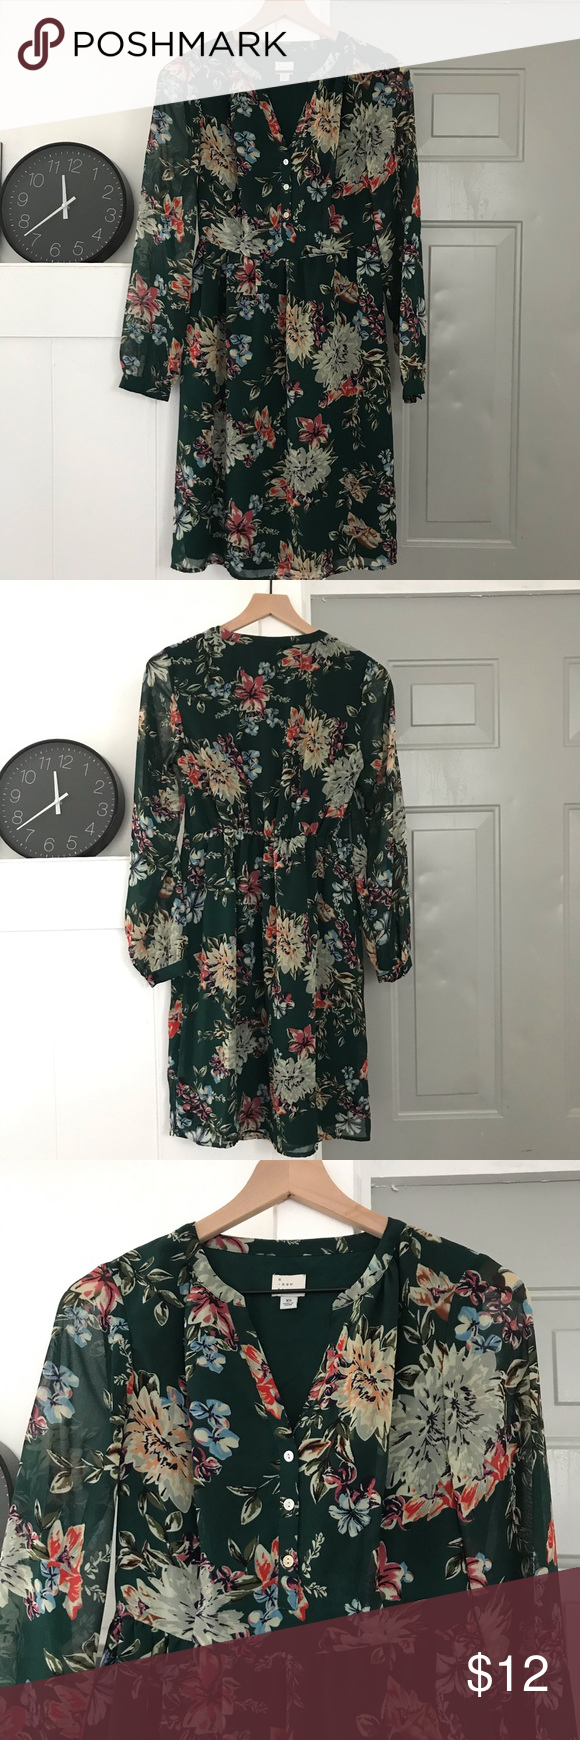 Target A New Day Floral Green Dress Really Cute Green Floral Long Sleeve Dress From Target Bought In Wi Long Sleeve Floral Dress Green Floral Dress Green Dress [ 1740 x 580 Pixel ]